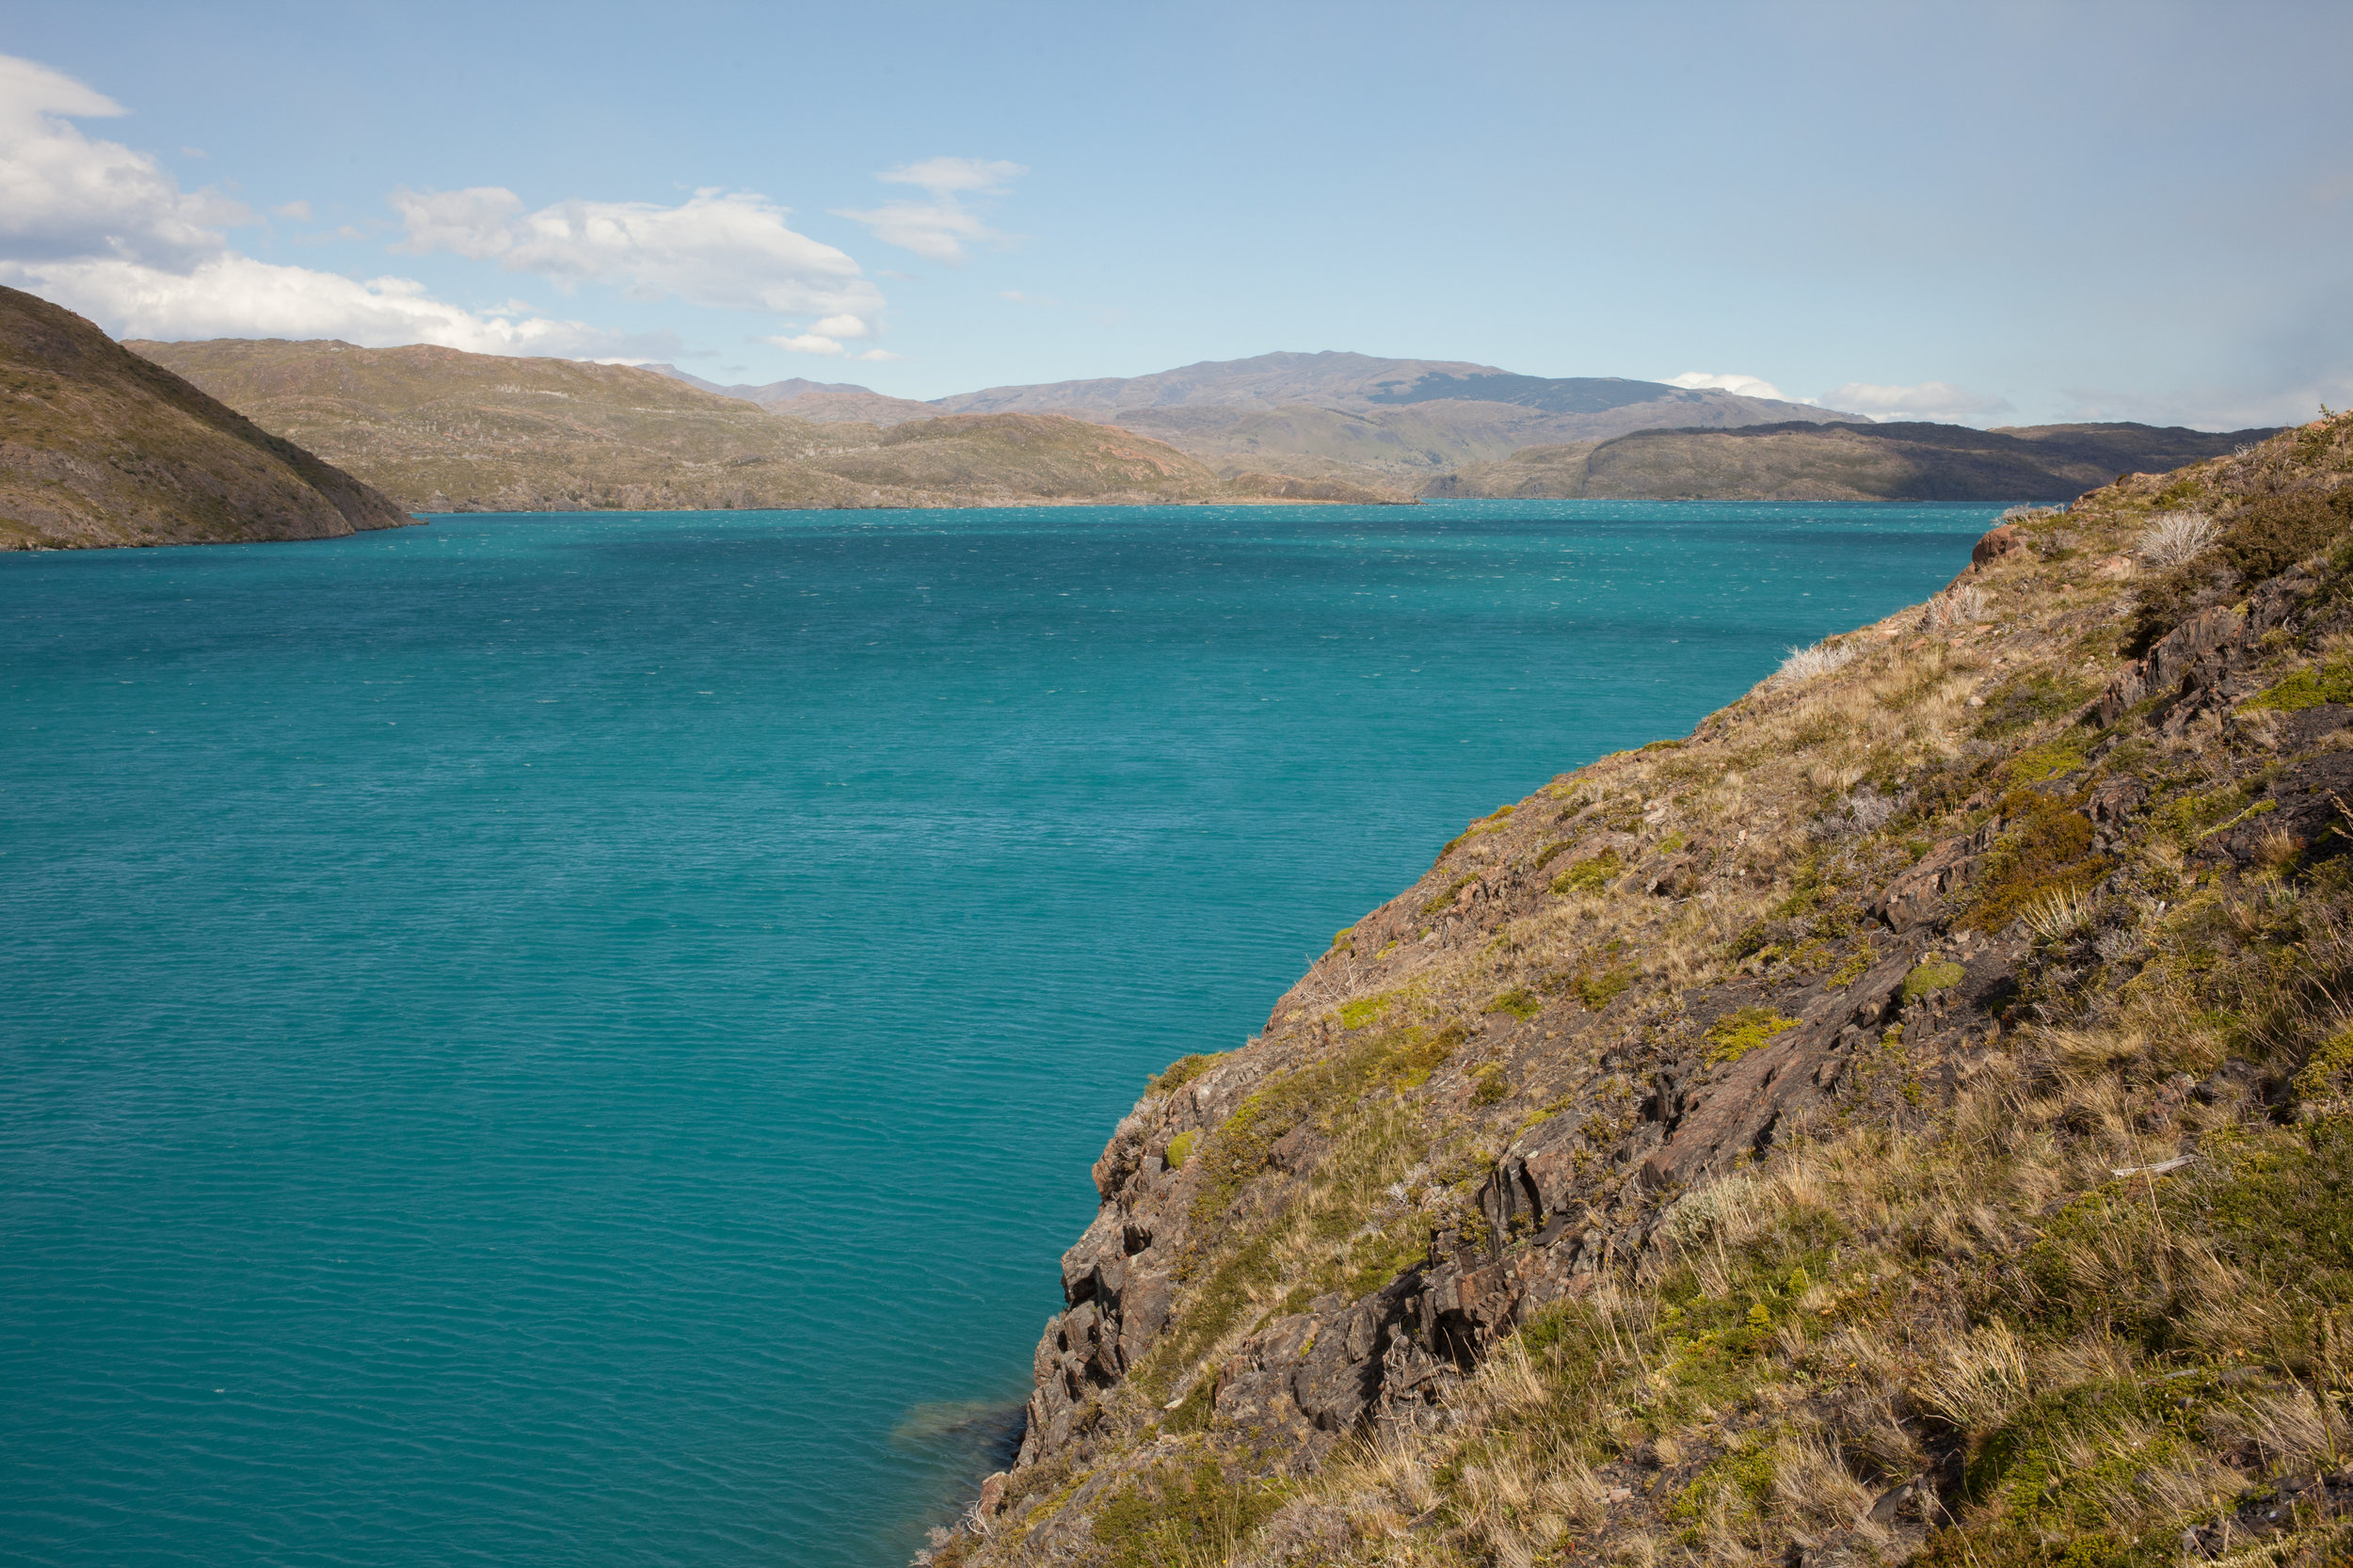 PehoéLake shivers with small waves caused by the fetch from the constant wind. Pehoéis a beautiful shade of blue and looks incredibly striking against the green hillsides surrounding the water. Torres del Paine National Park, Chile.